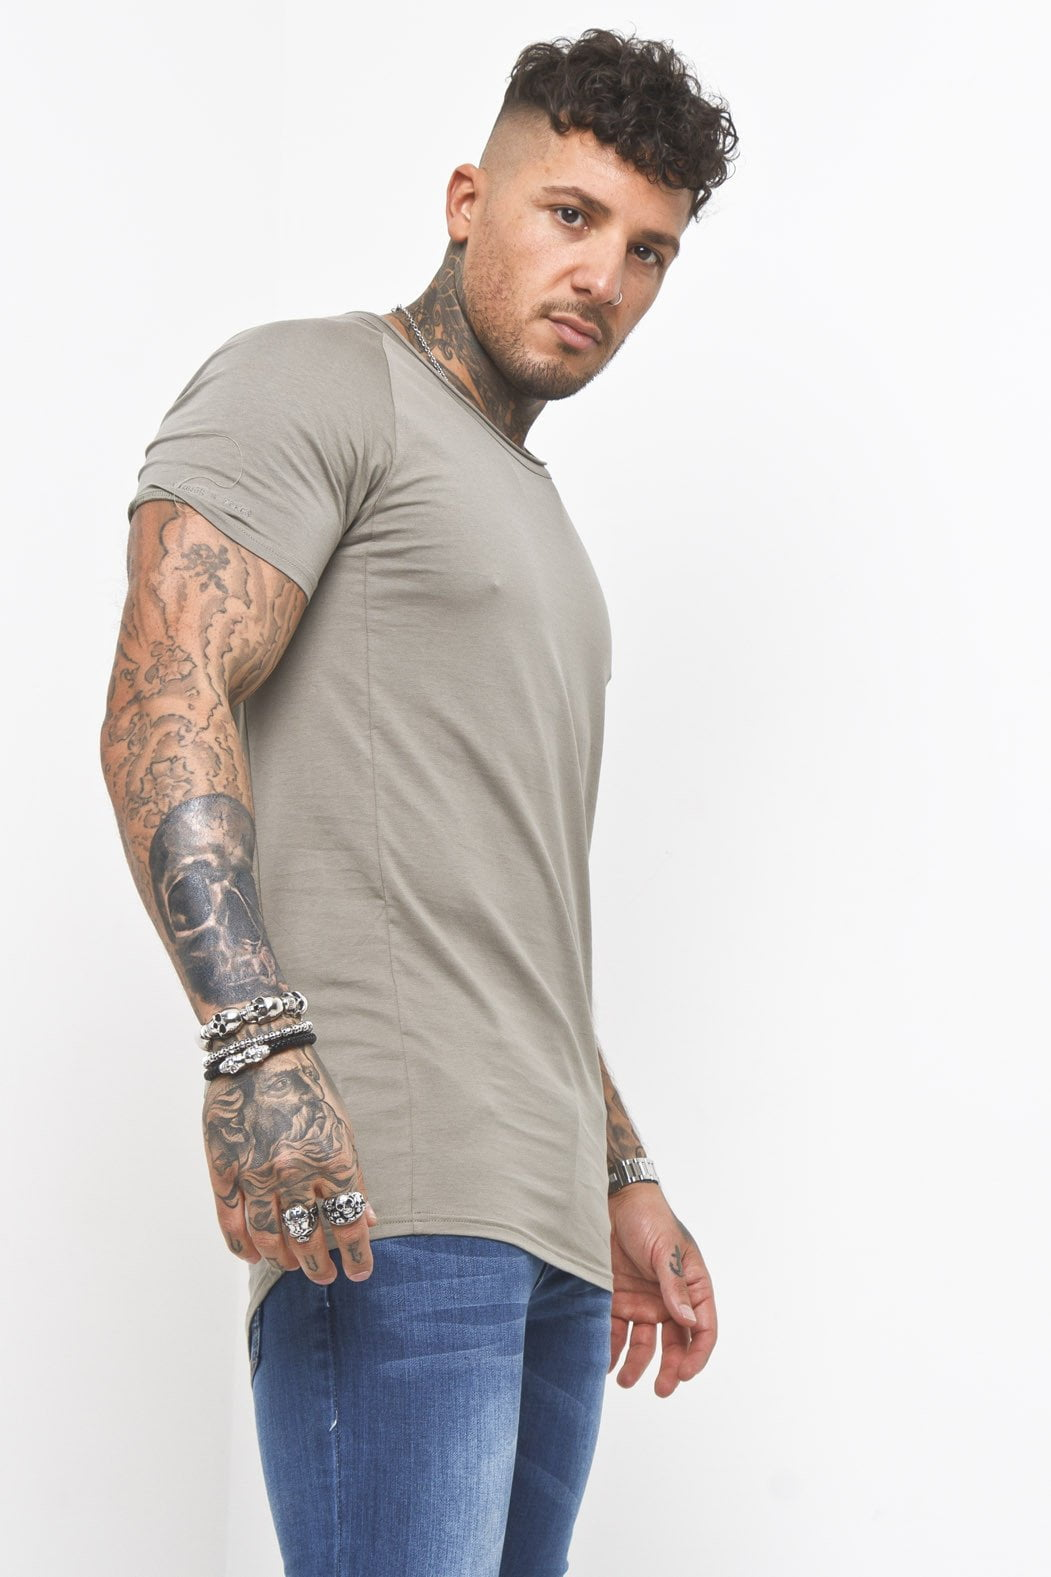 Liquor n Poker - Scoop neck muscle fit t shirt in Khaki - Liquor N Poker  Liquor N Poker